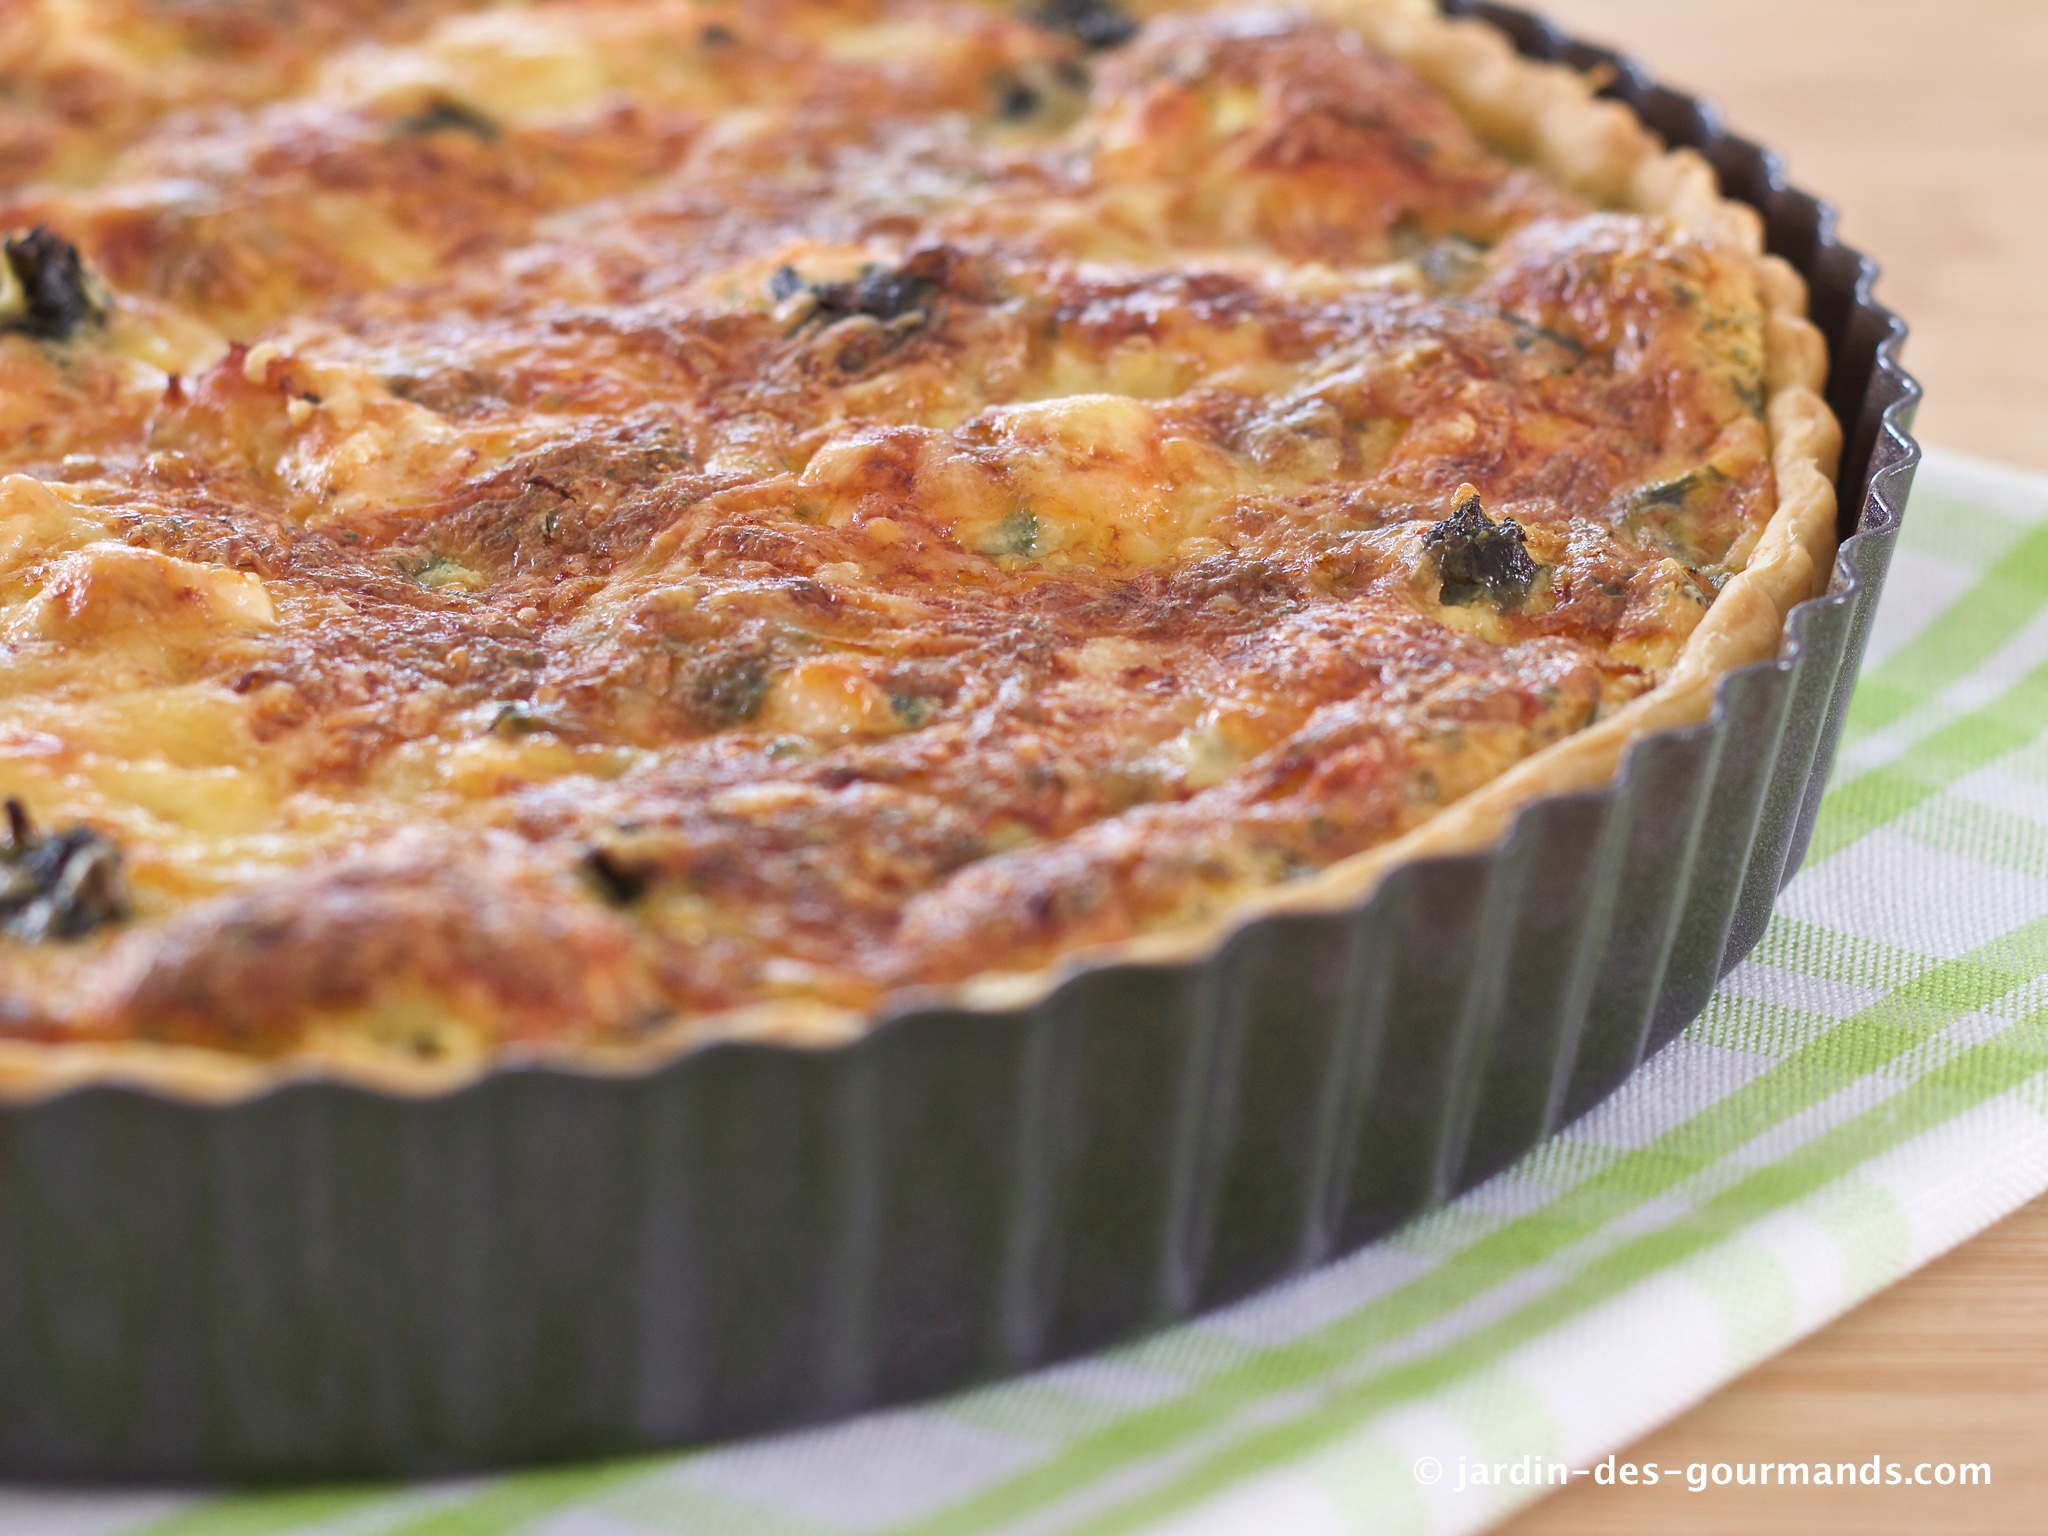 quiche-saumon-et-epinards-jdg8